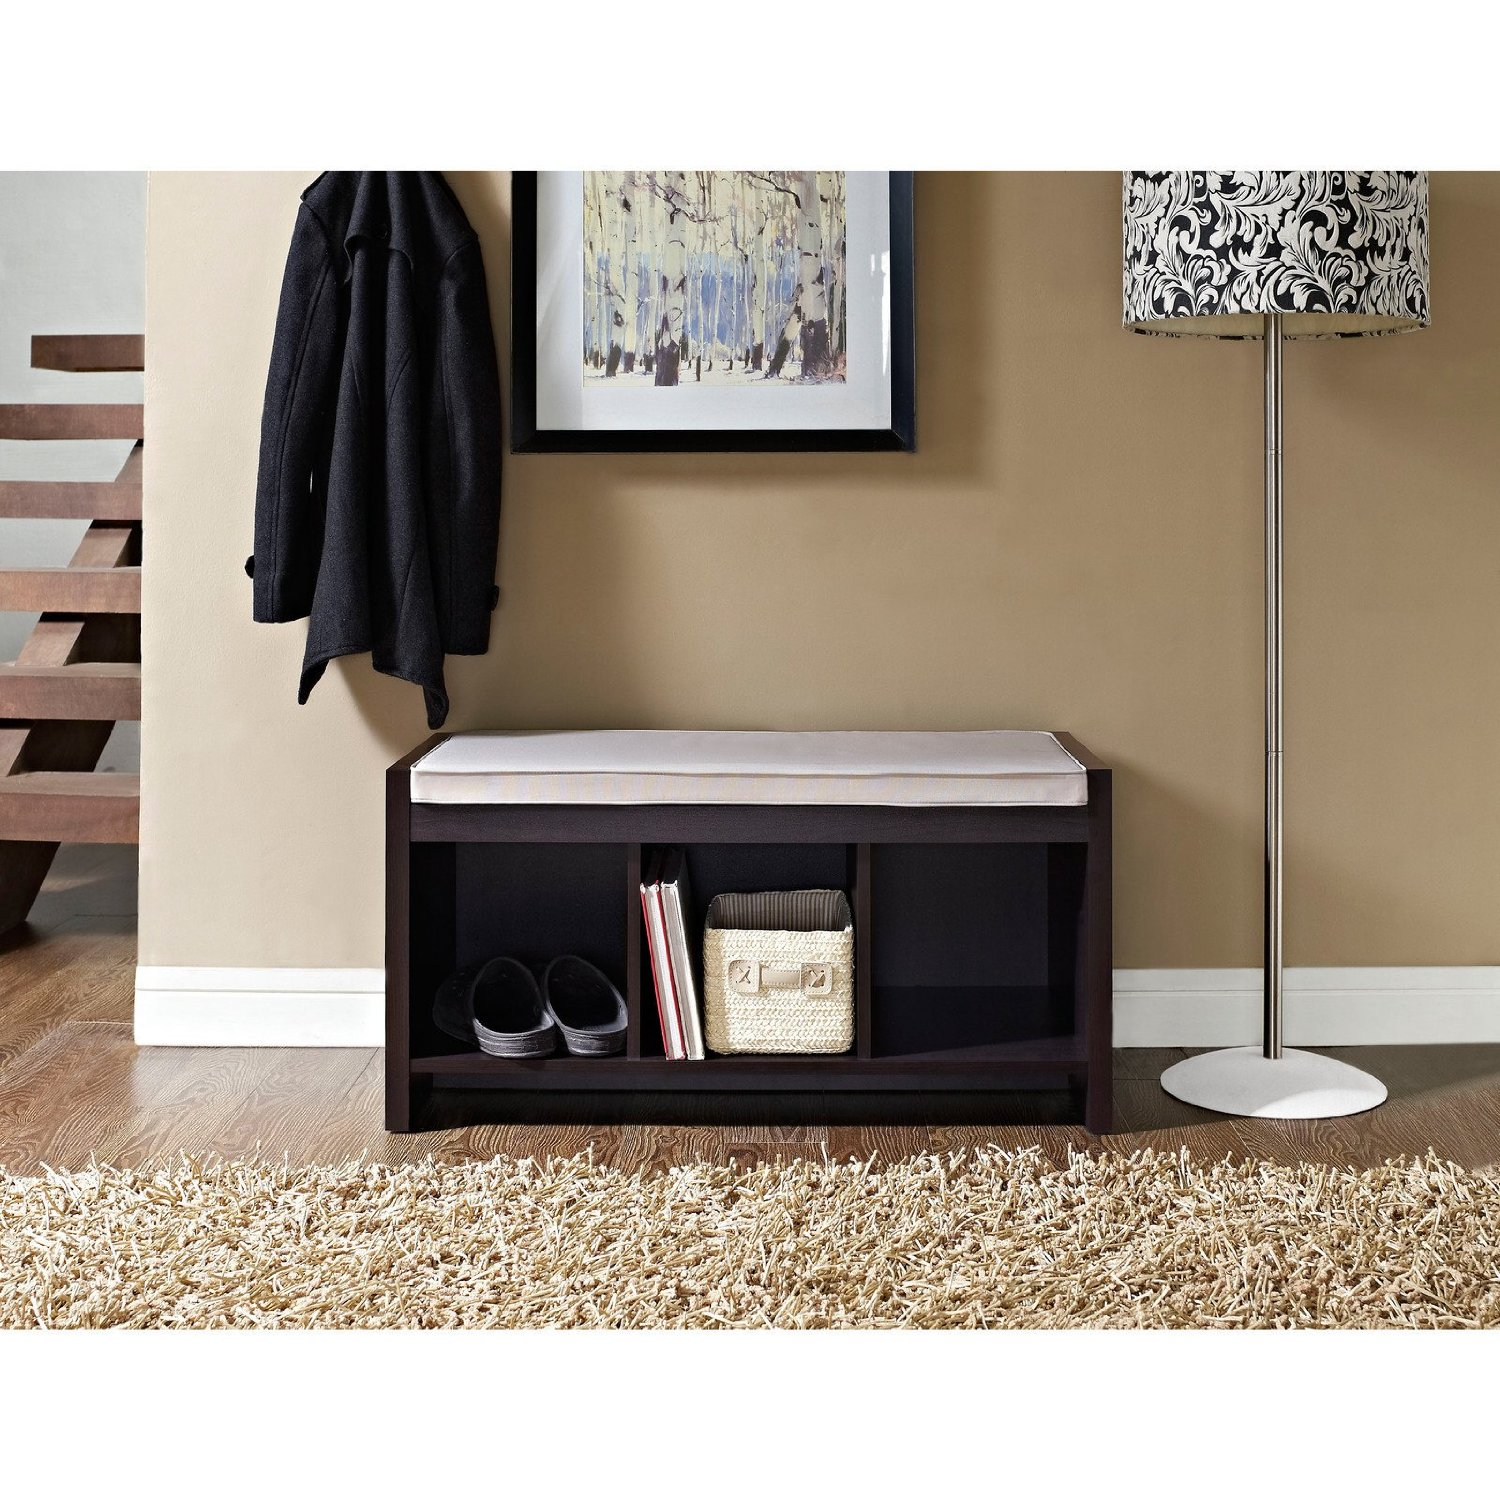 Minimalist-entryway-with-a-a-short-little-bench-and-a-decorative-lamp-